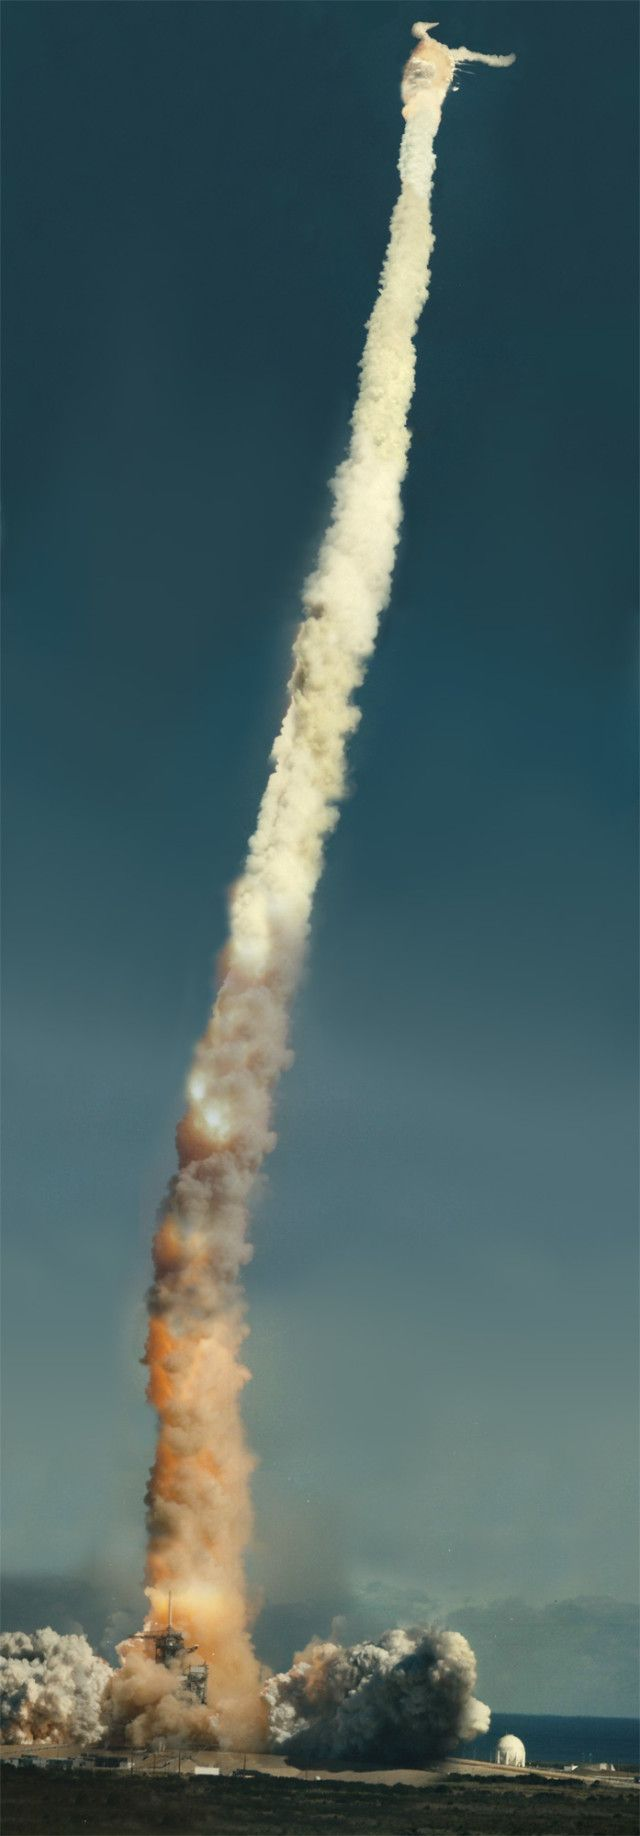 space shuttle explosion 1985 - photo #15